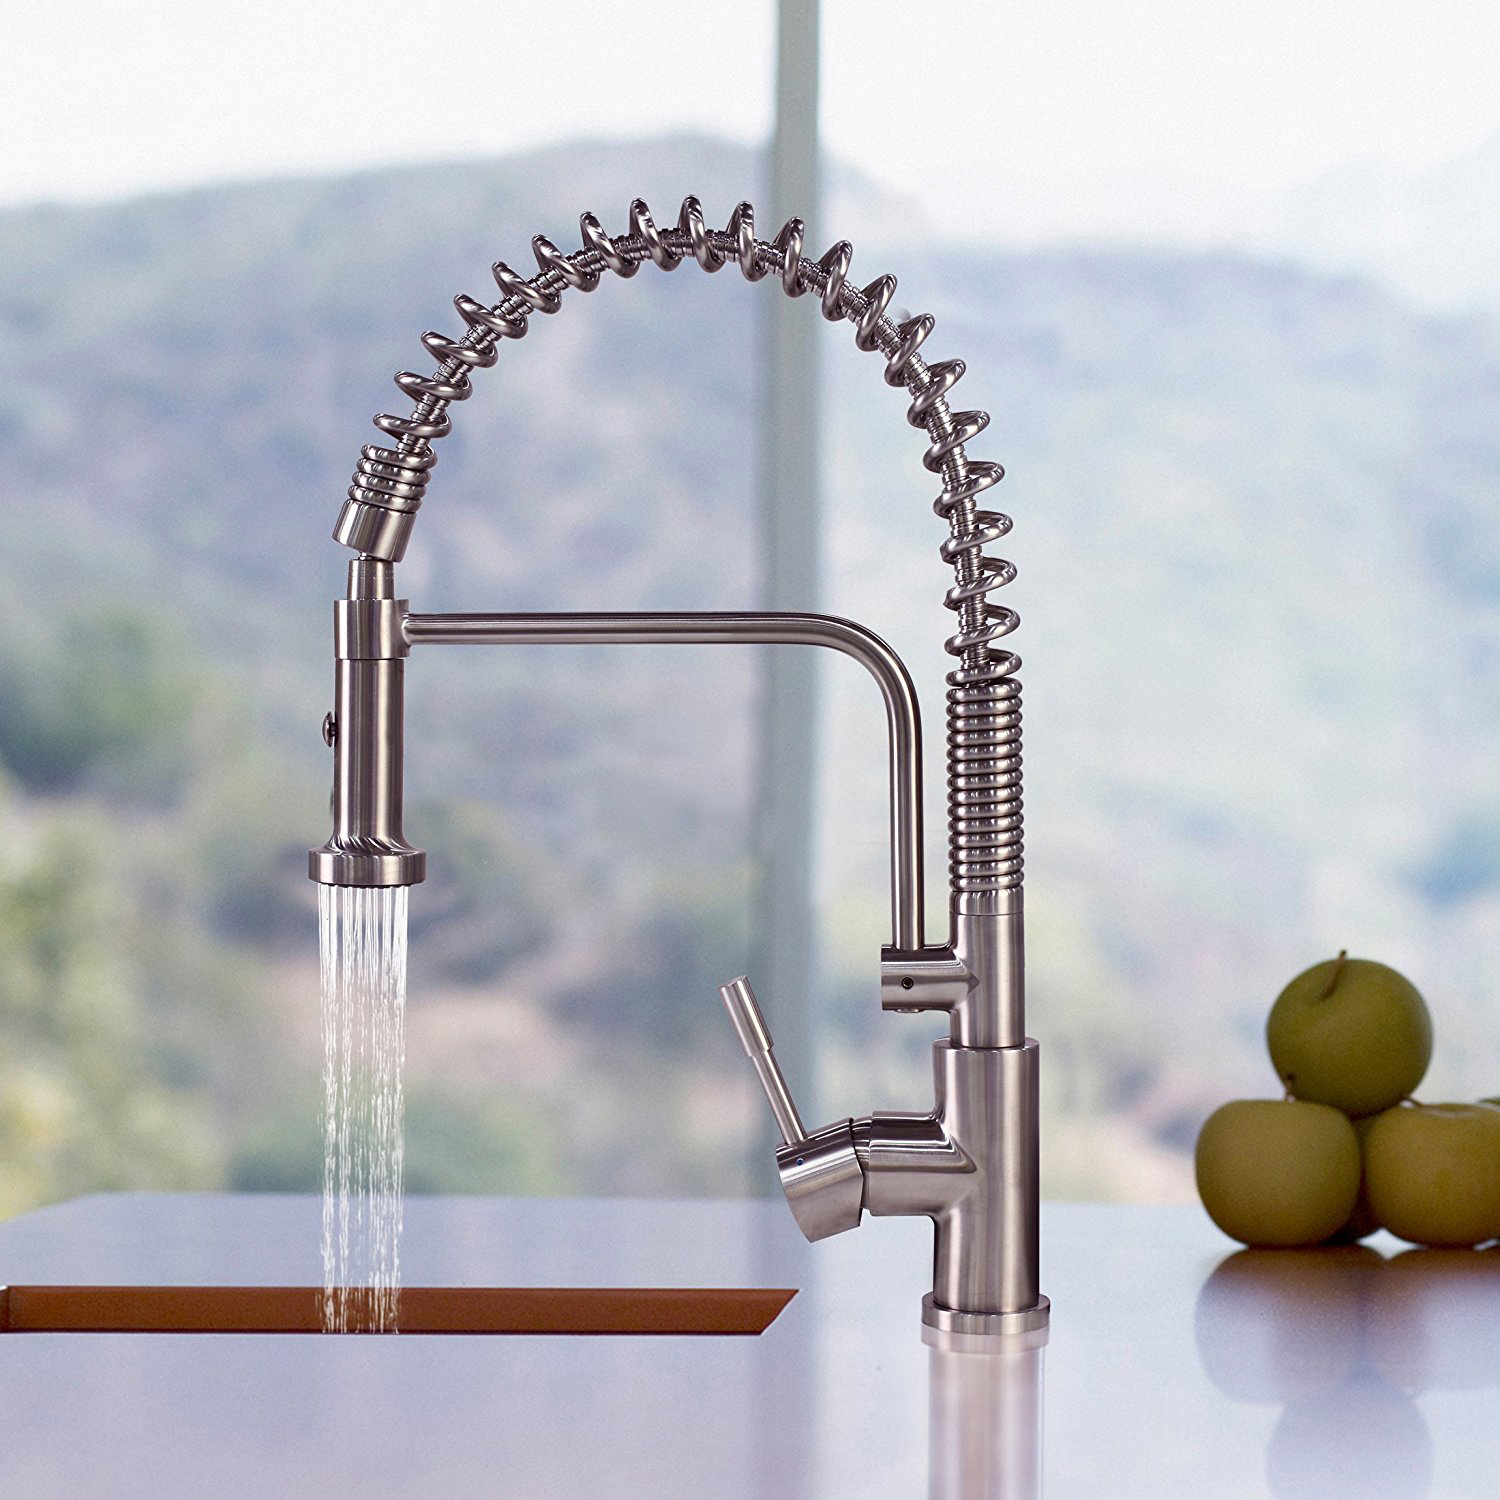 10 Best Commercial Kitchen Faucets - (Reviews & Buying Guide 2018)